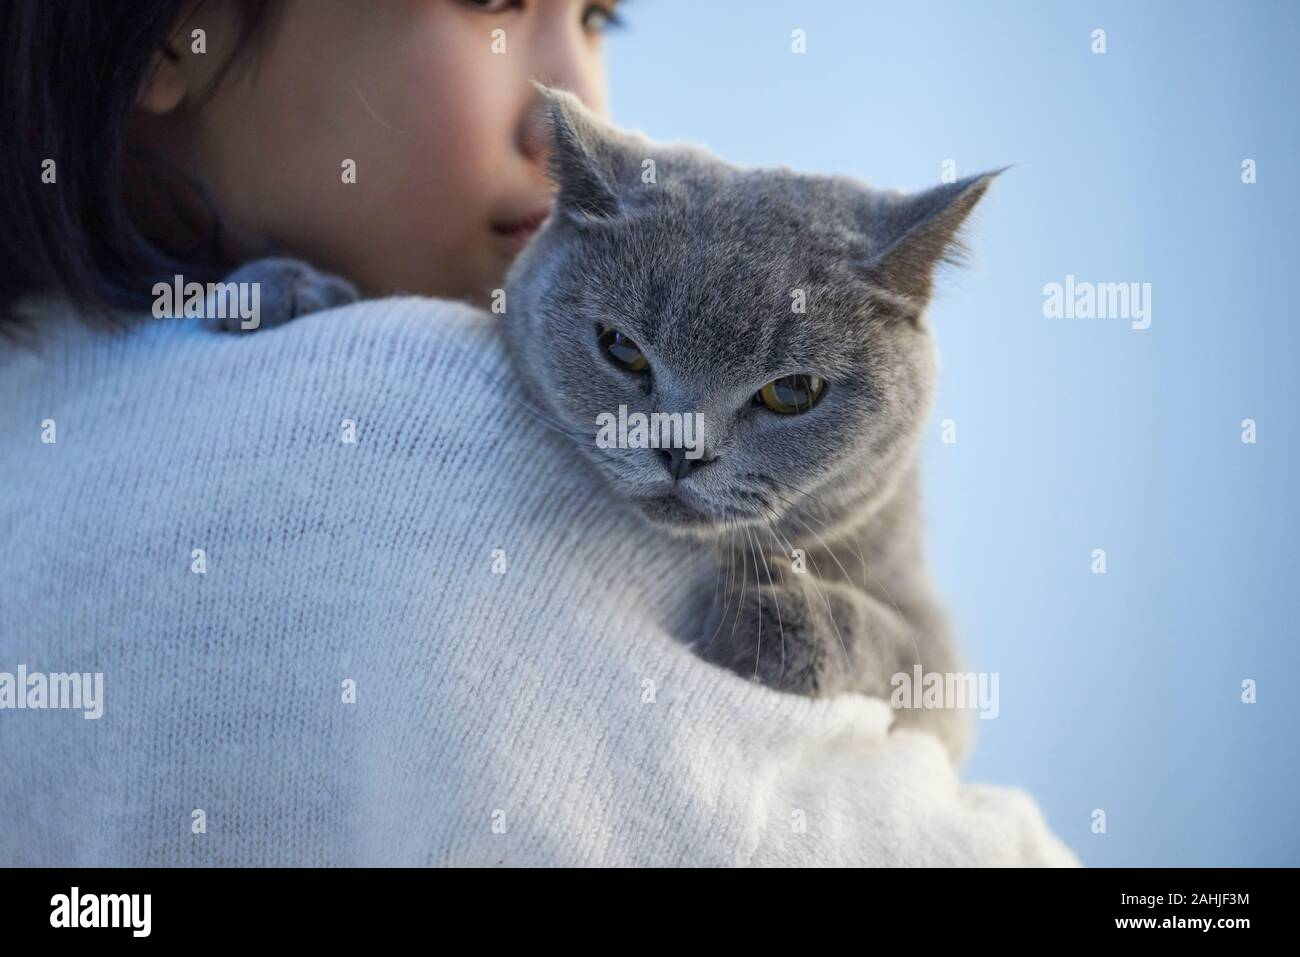 A Little Asian Girl Is Holding A Cute English Shorthair Cat Stock Photo Alamy